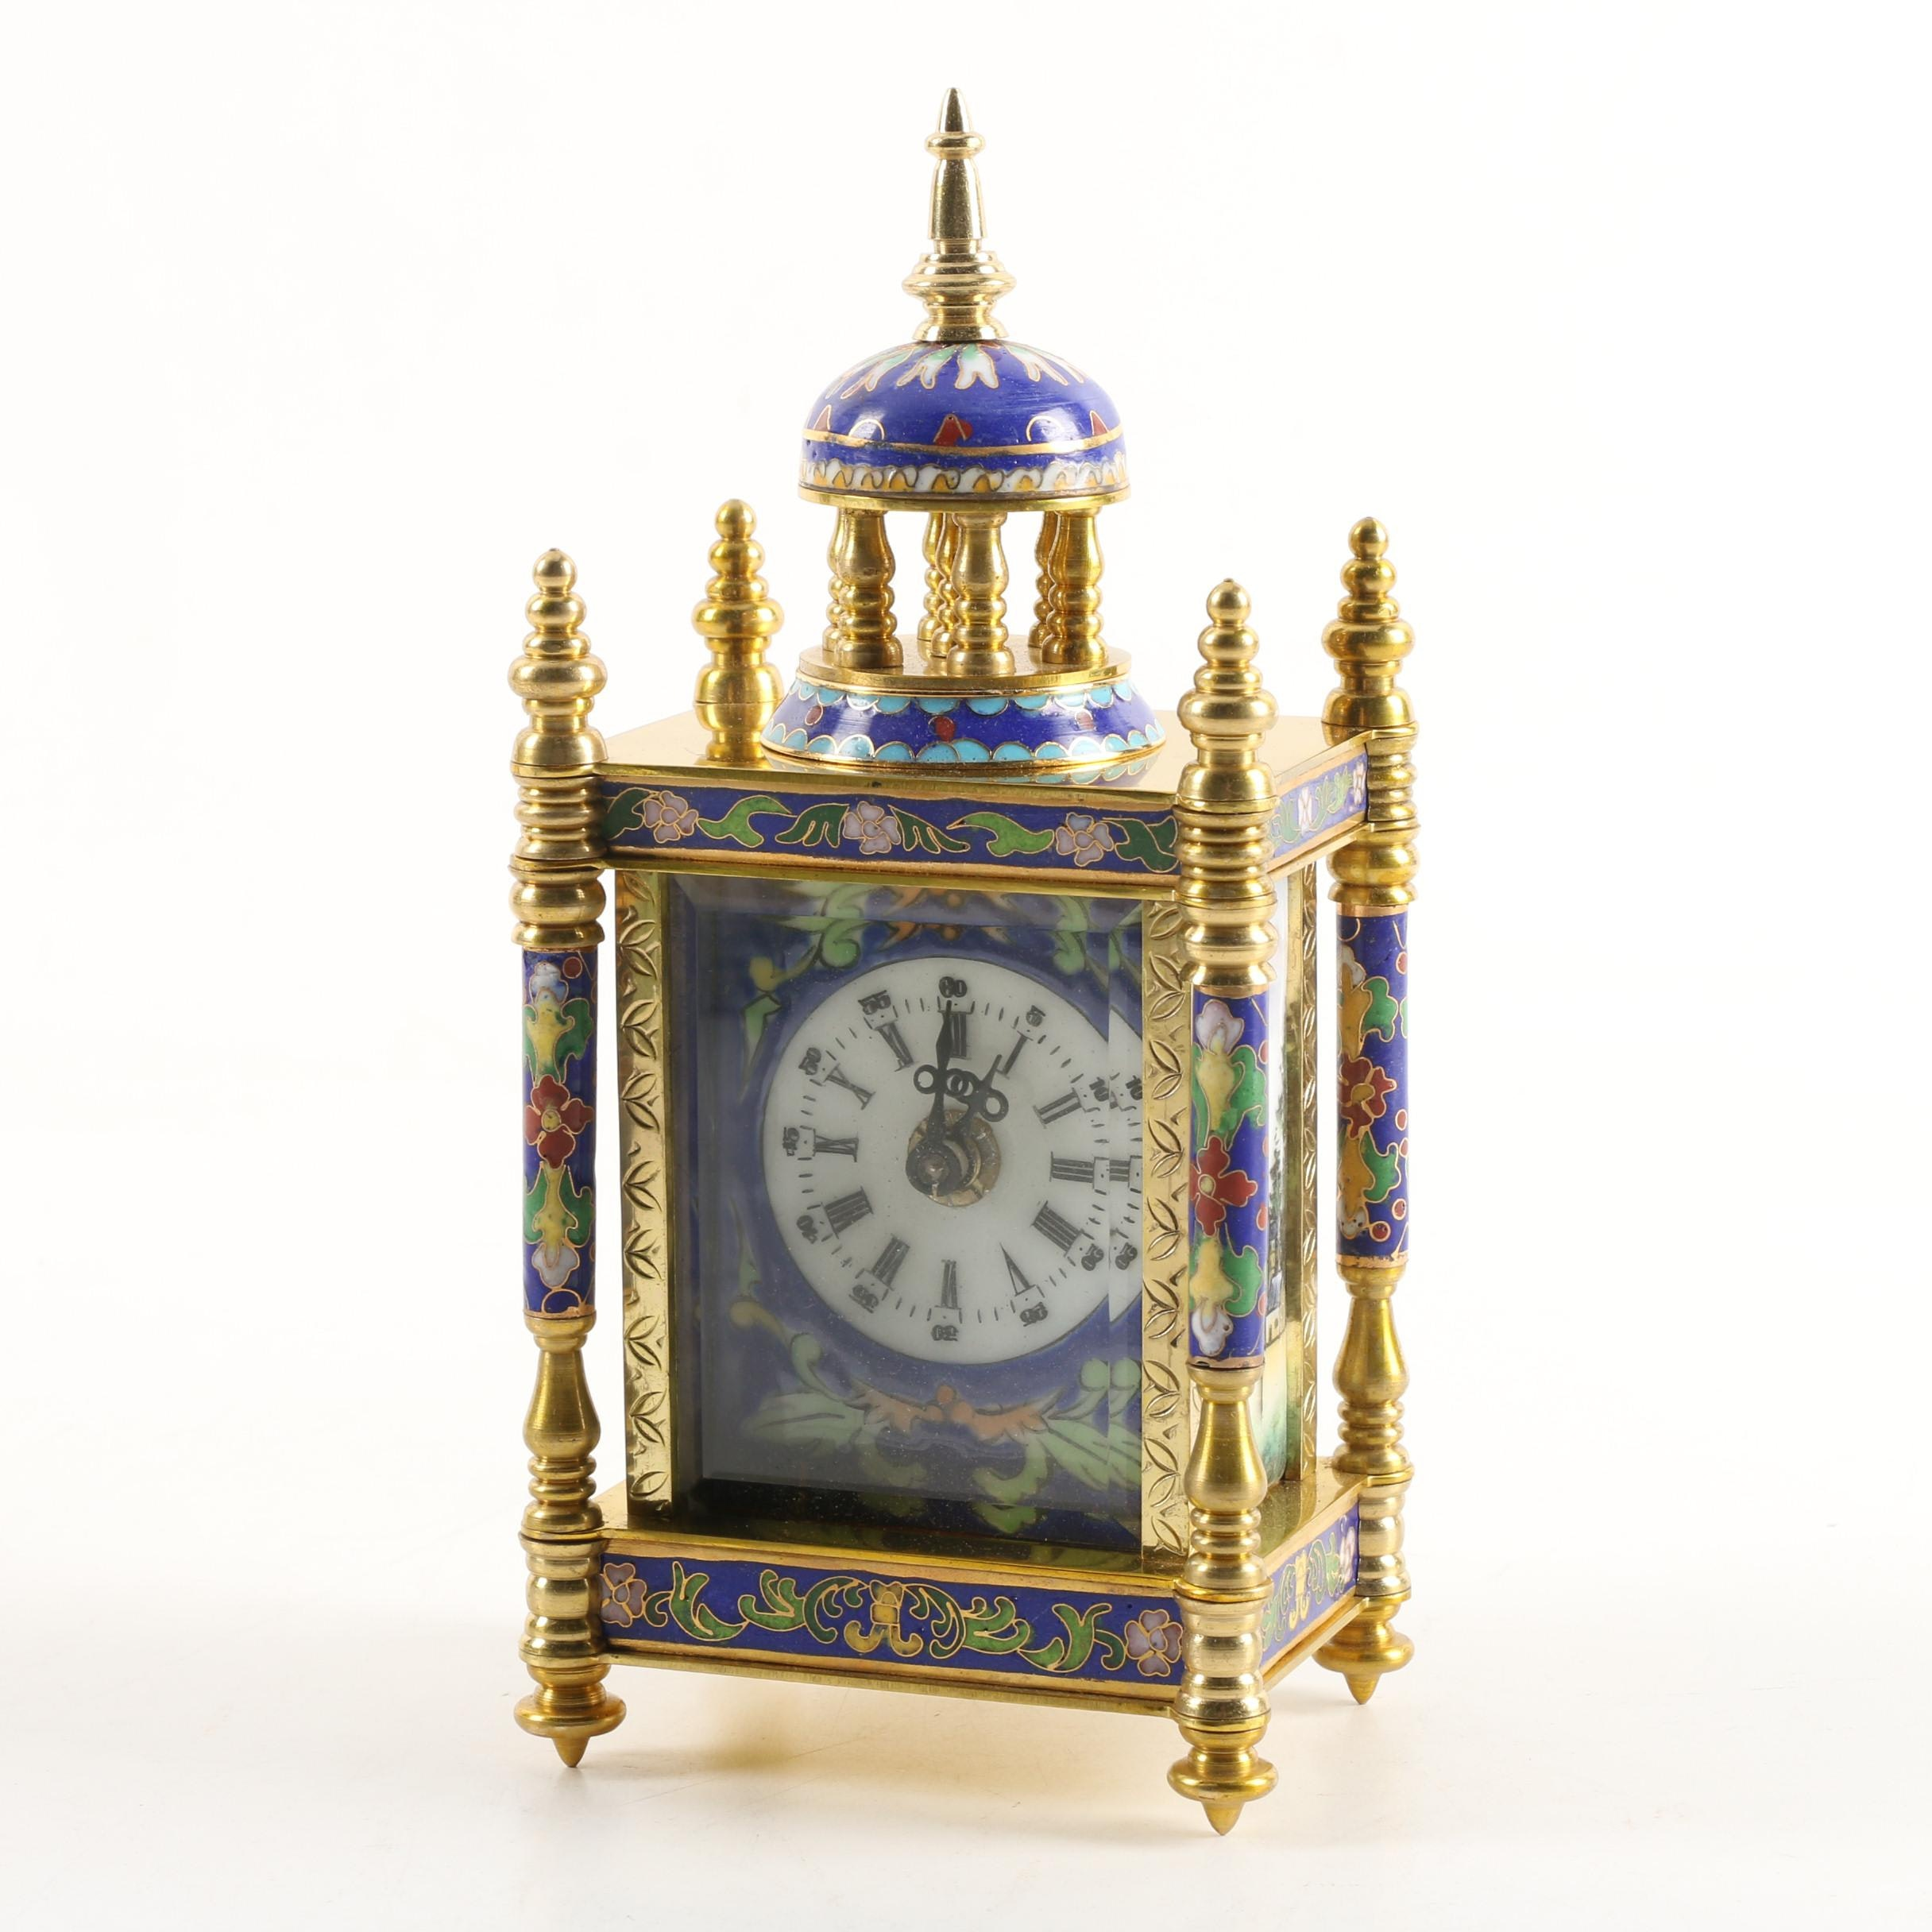 Chinese Cloisonné Empire Style Cloisonné Shelf Clock with Hand-Painted Face